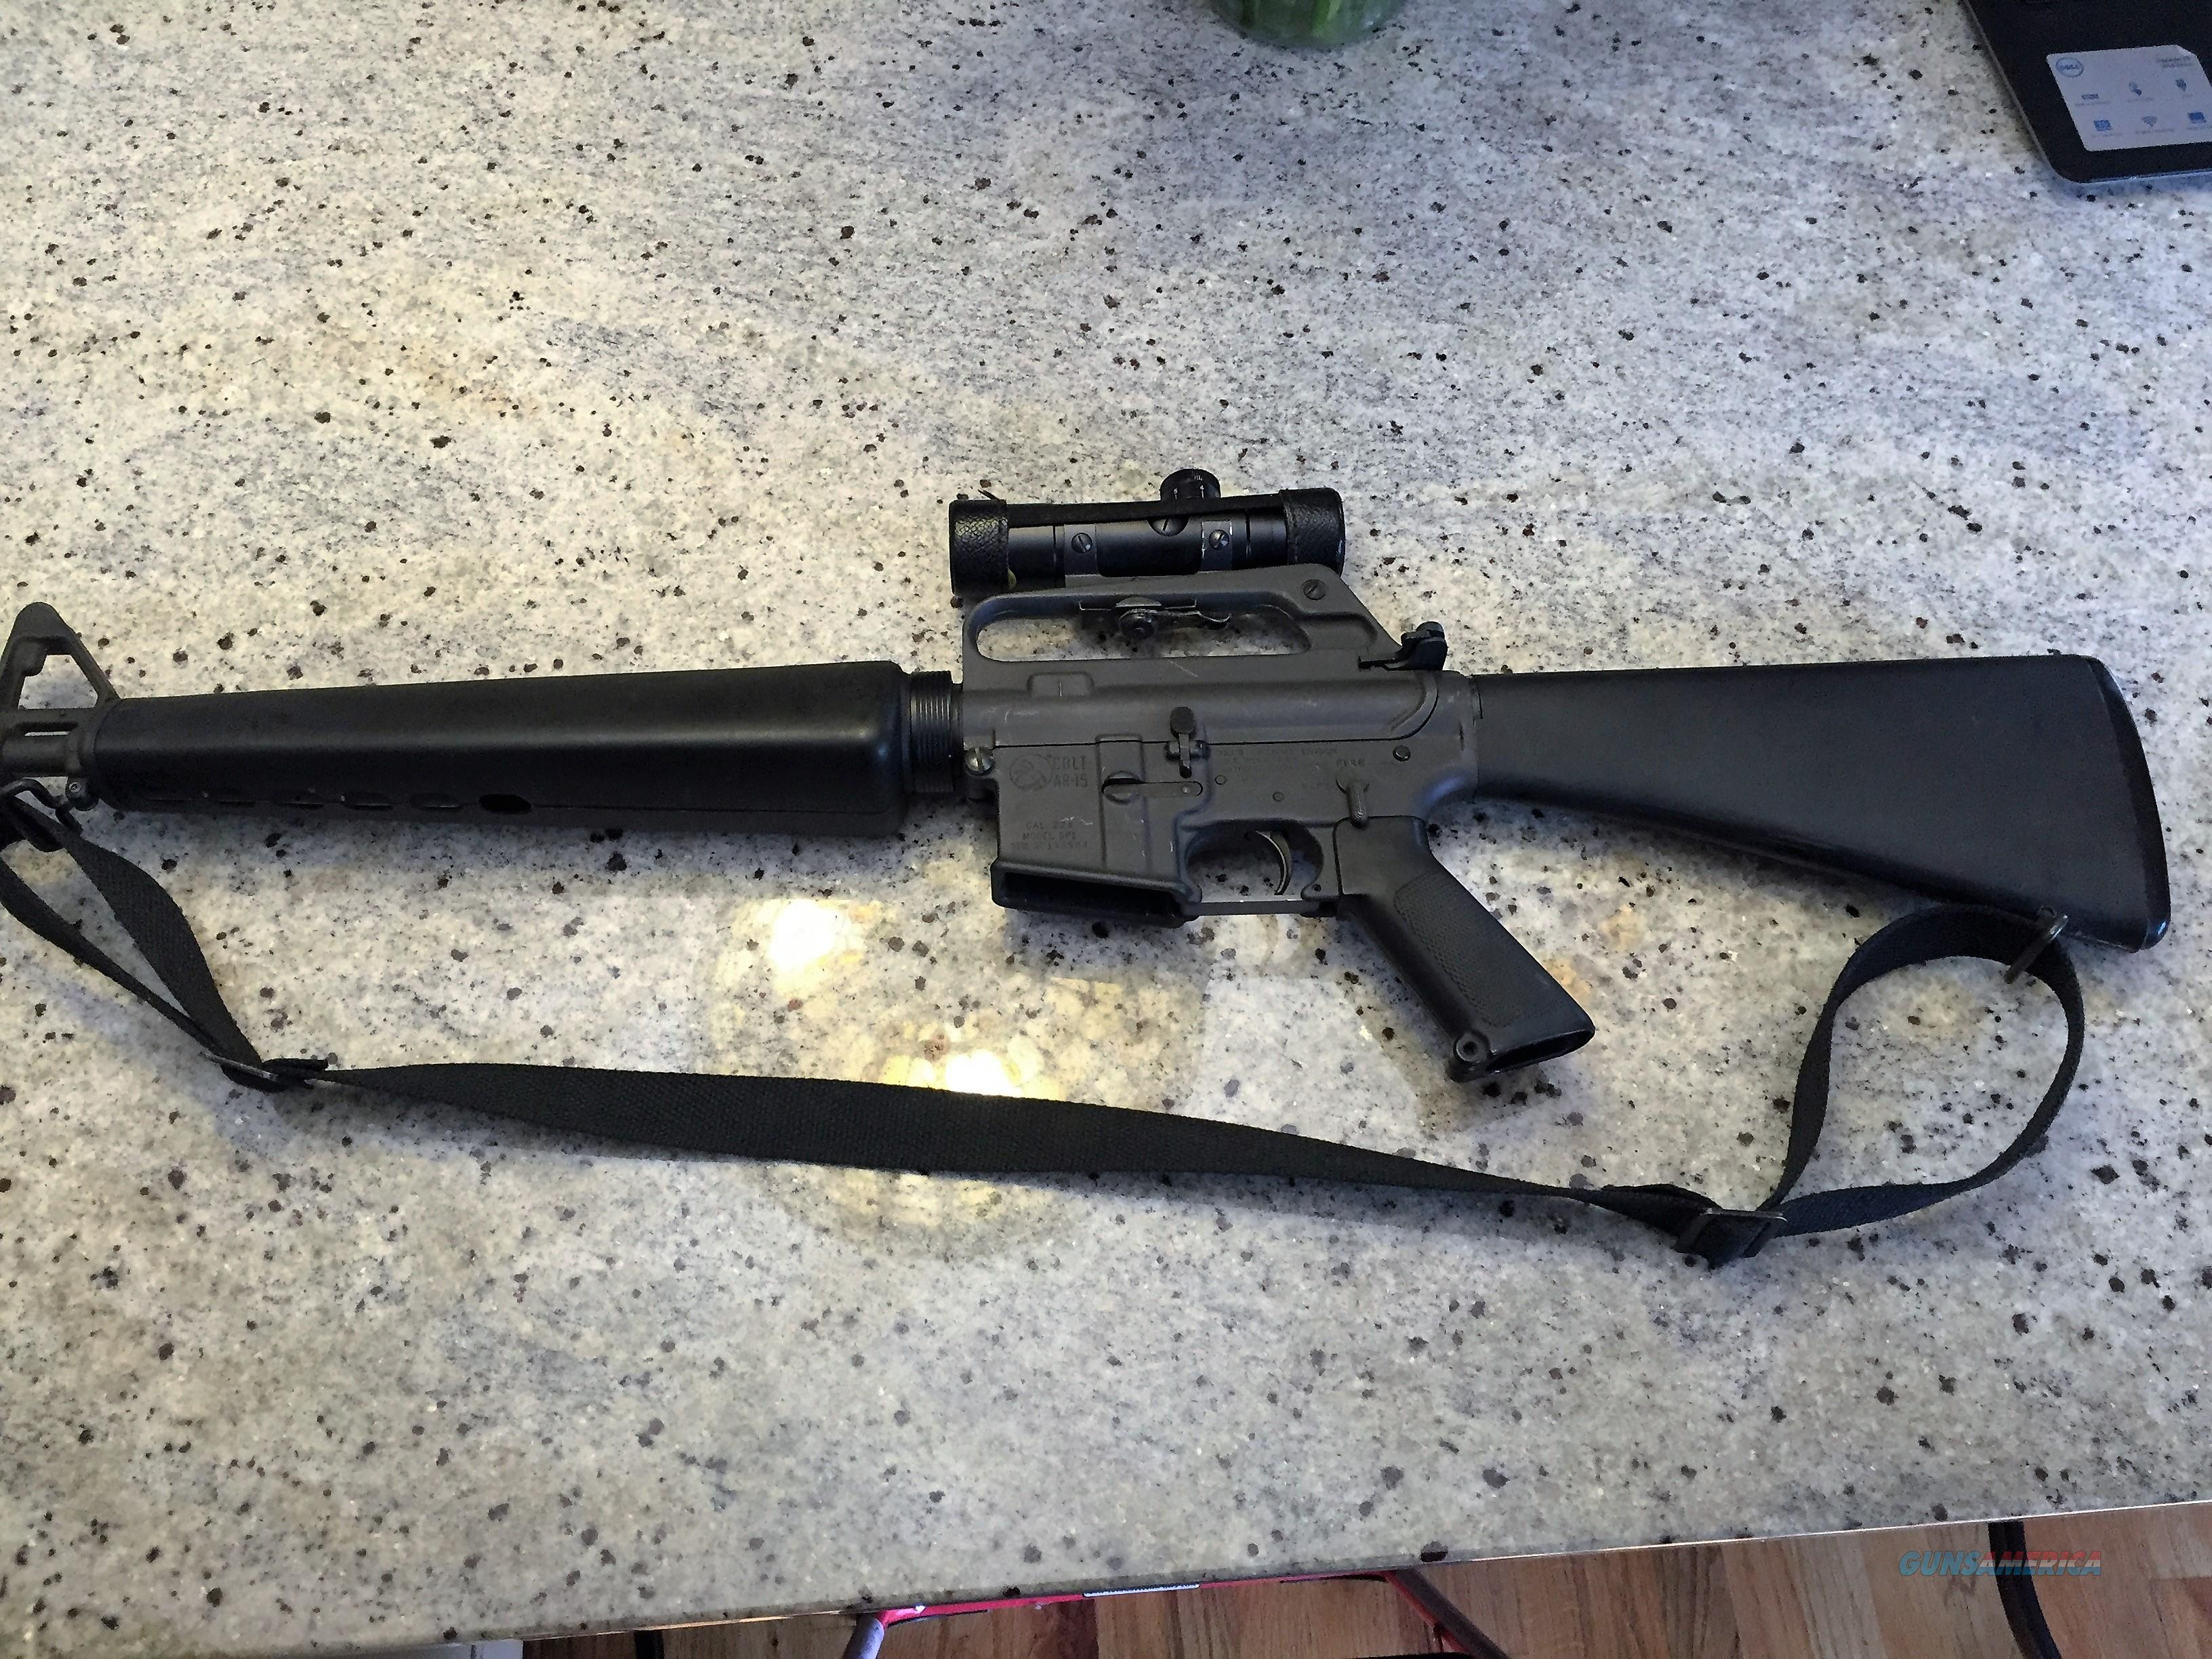 COLT SP1 5.56 AR15 WITH COLT COLT 3X20 SCOPE  Guns > Rifles > AR-15 Rifles - Small Manufacturers > Complete Rifle